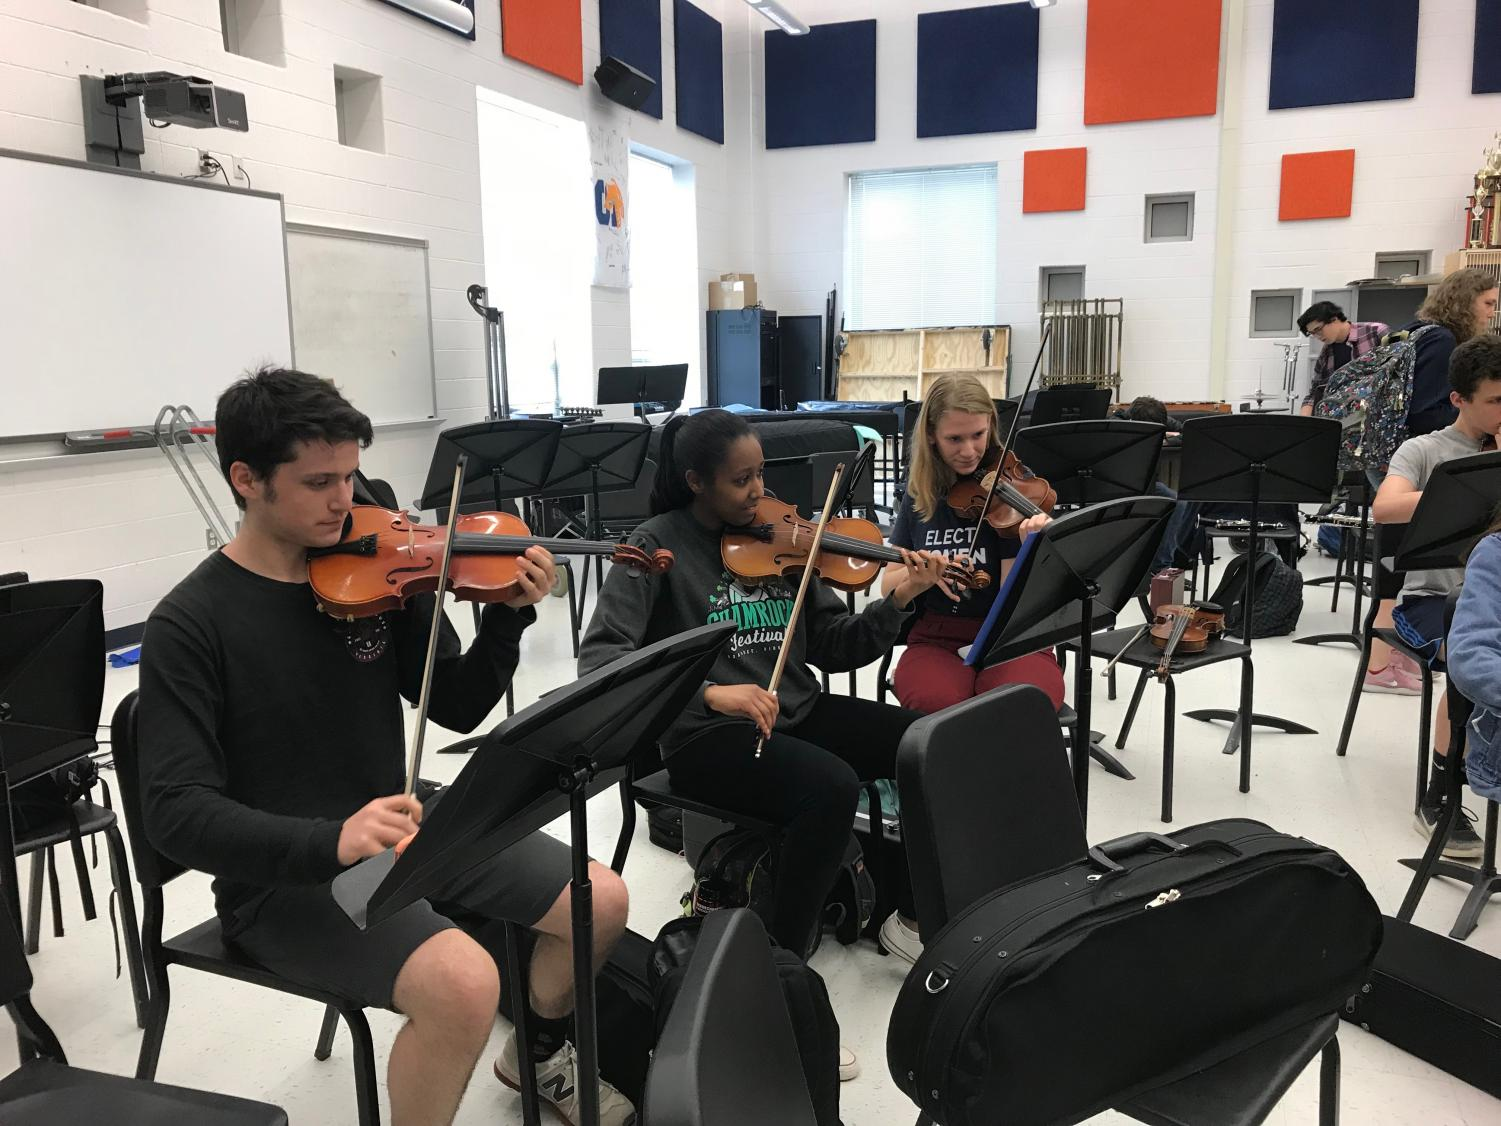 Members of the pit orchestra attend a practice after school in the band room. It takes weeks of hard work for the student musicians to master the difficult music.